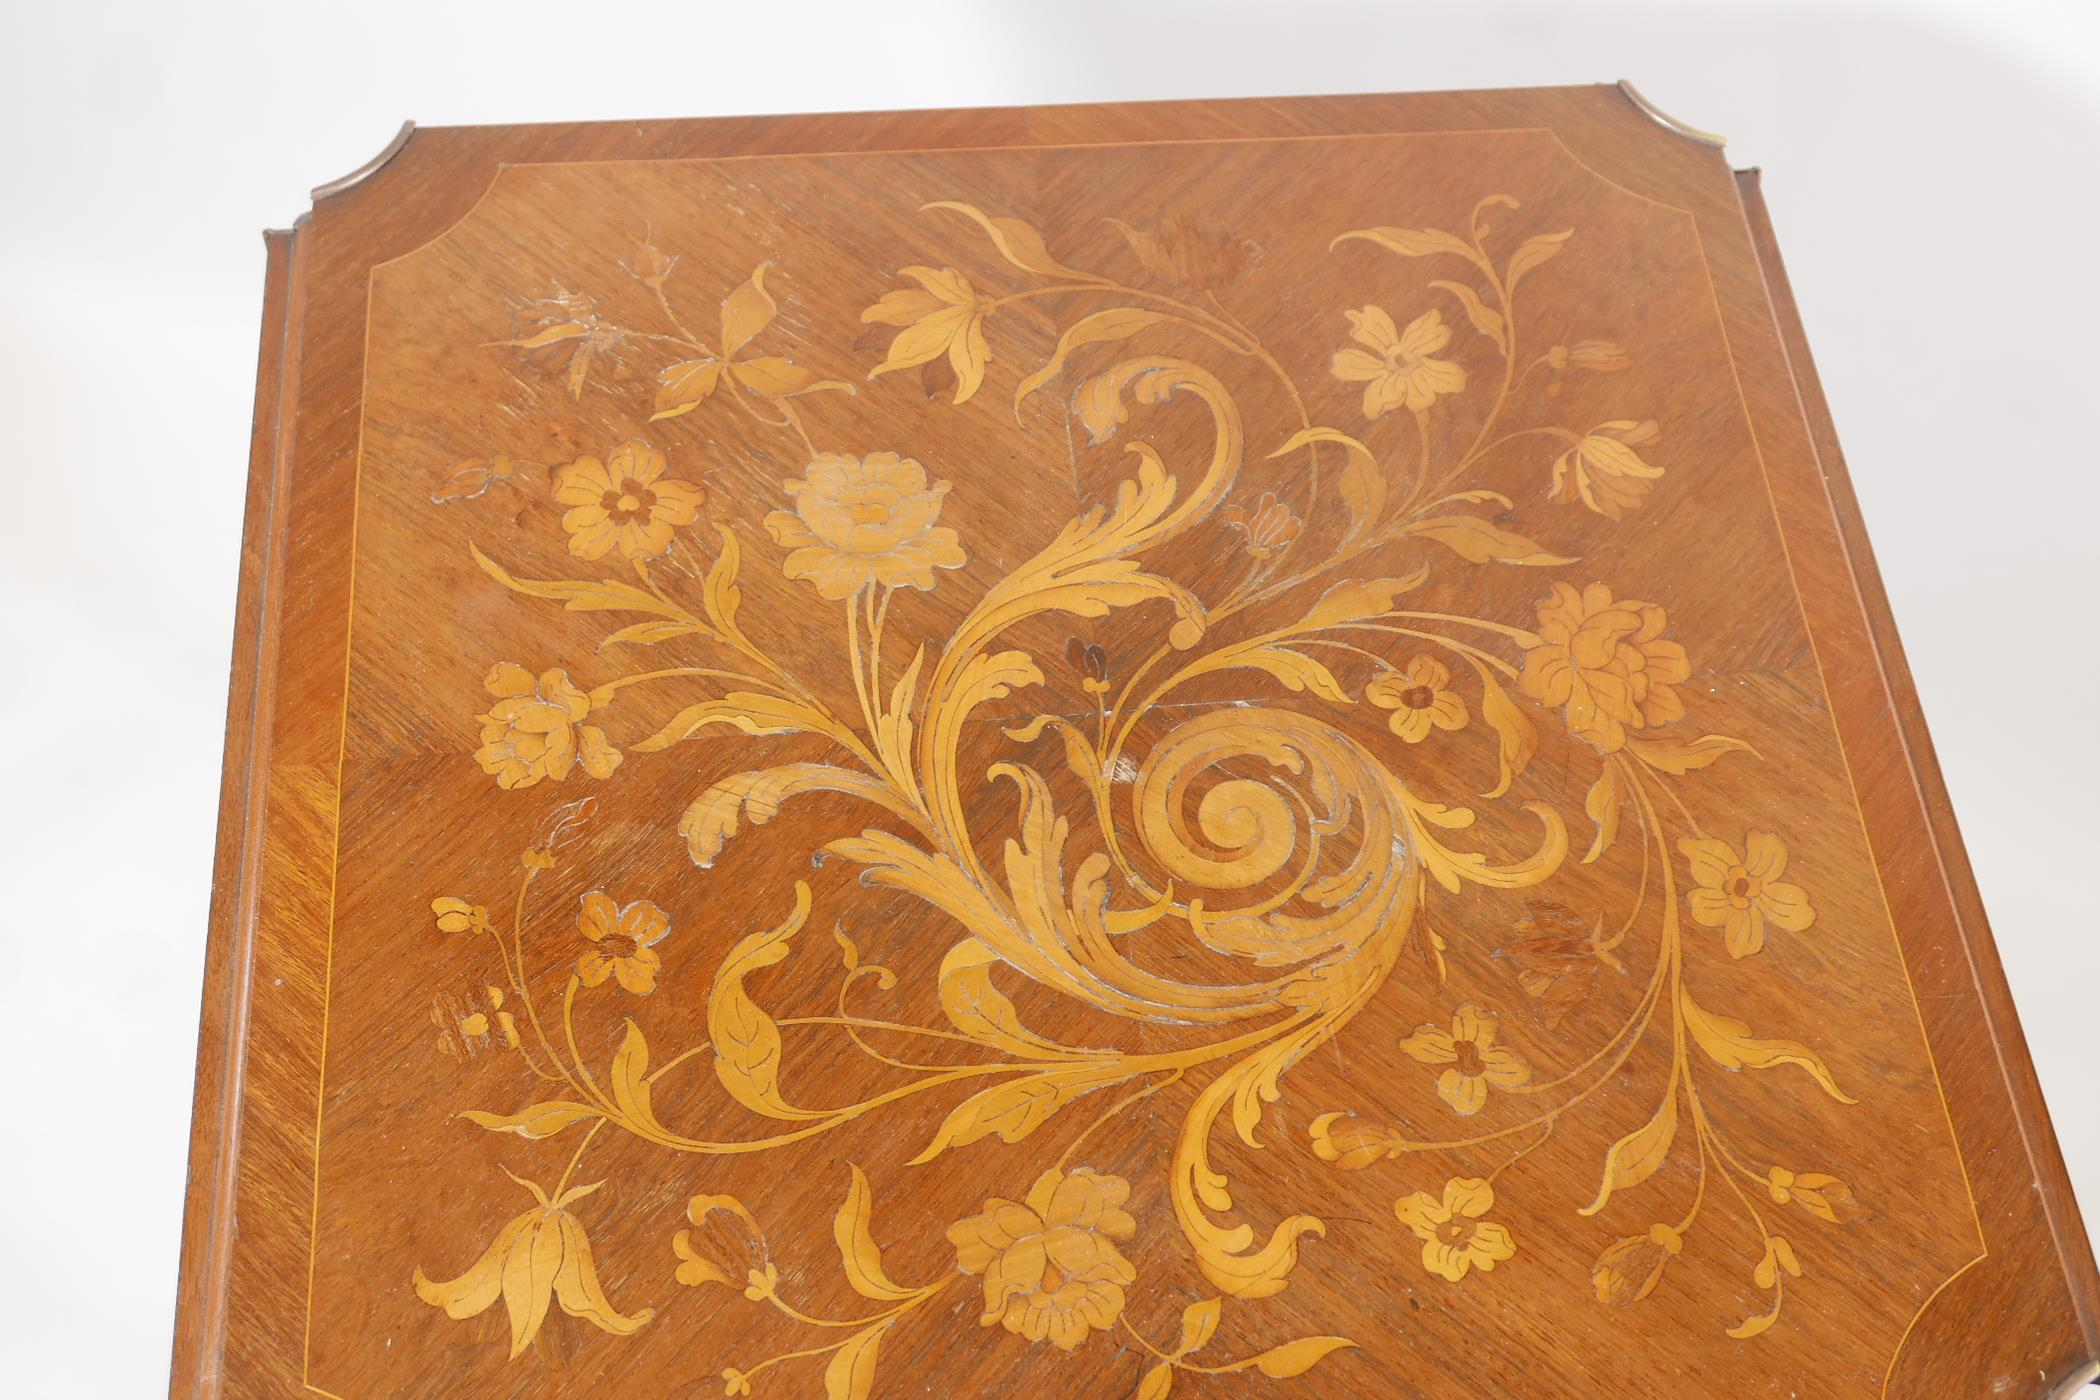 A French C19th marquetry inlaid rosewood centre table, with shaped drop leaves and gilt brass - Image 3 of 5